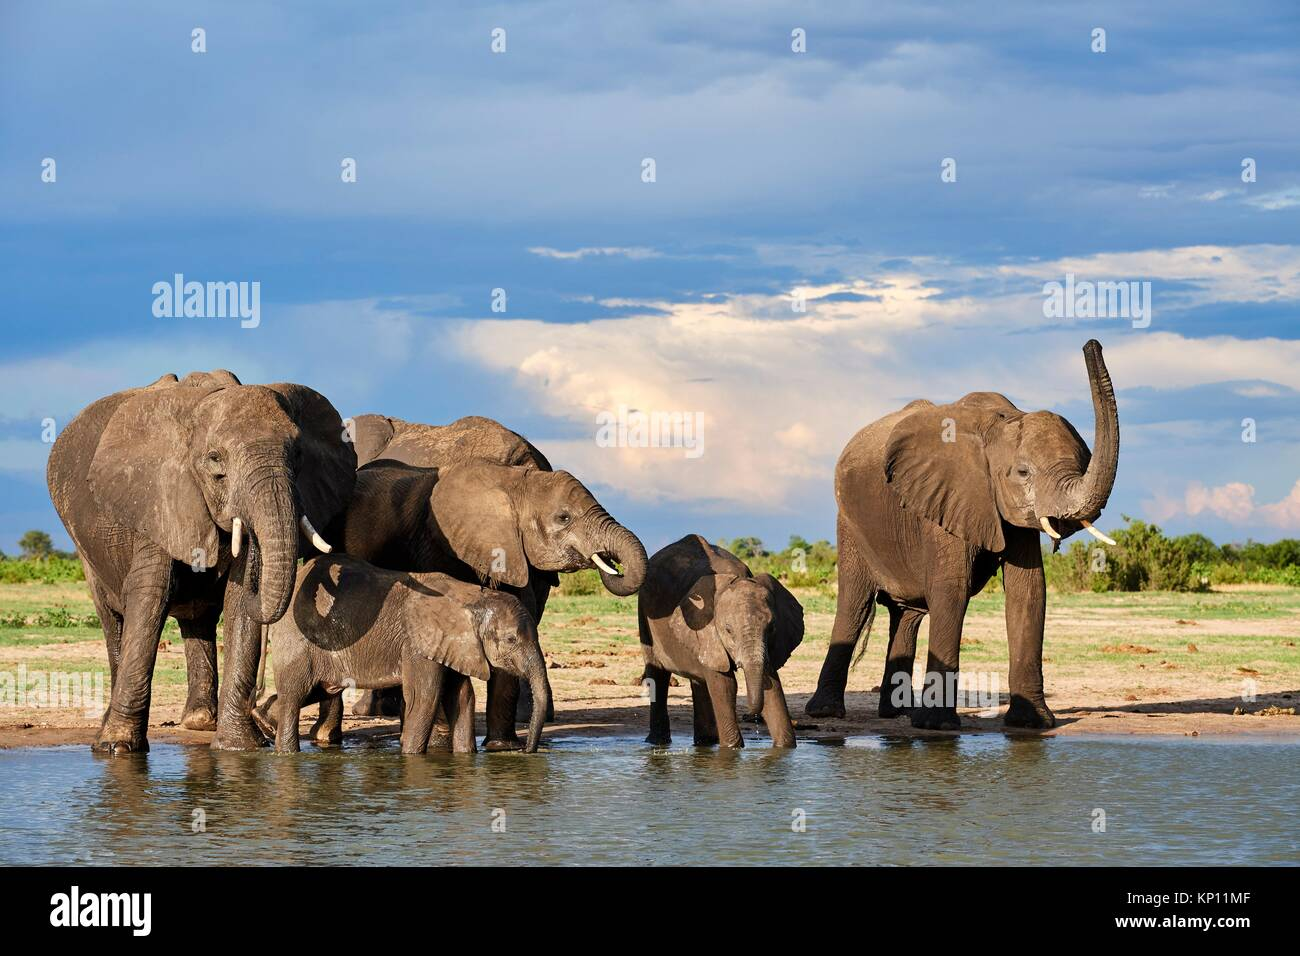 African elephant group (Loxodonta africana) drinking at a watehole. Hwange National Park, Zimbabwe. - Stock Image